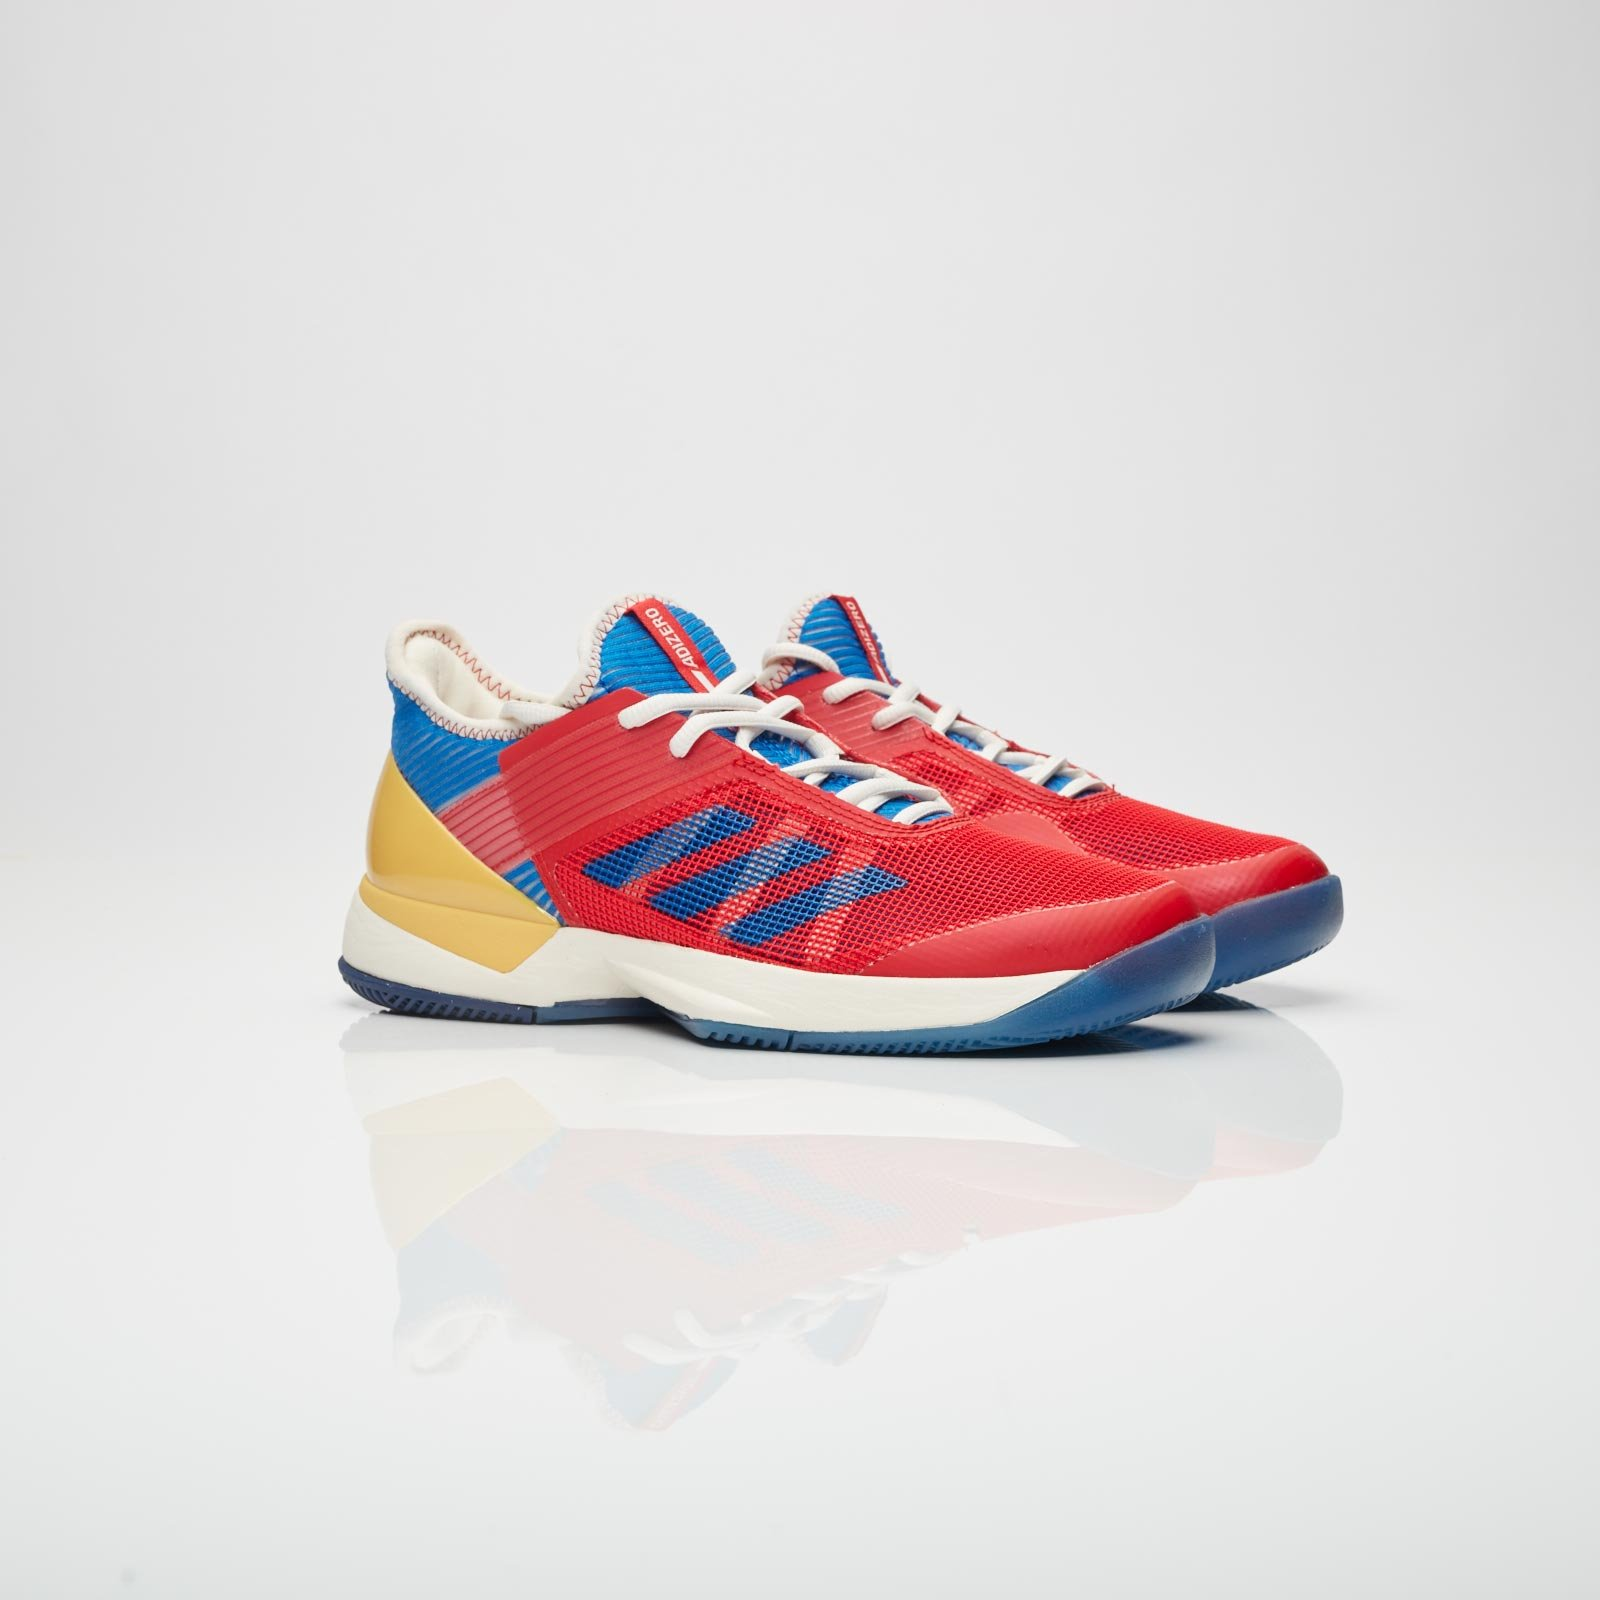 uk availability 9677c 1970a adidas by Pharrell Williams Adizero Ubersonic 3 W PW